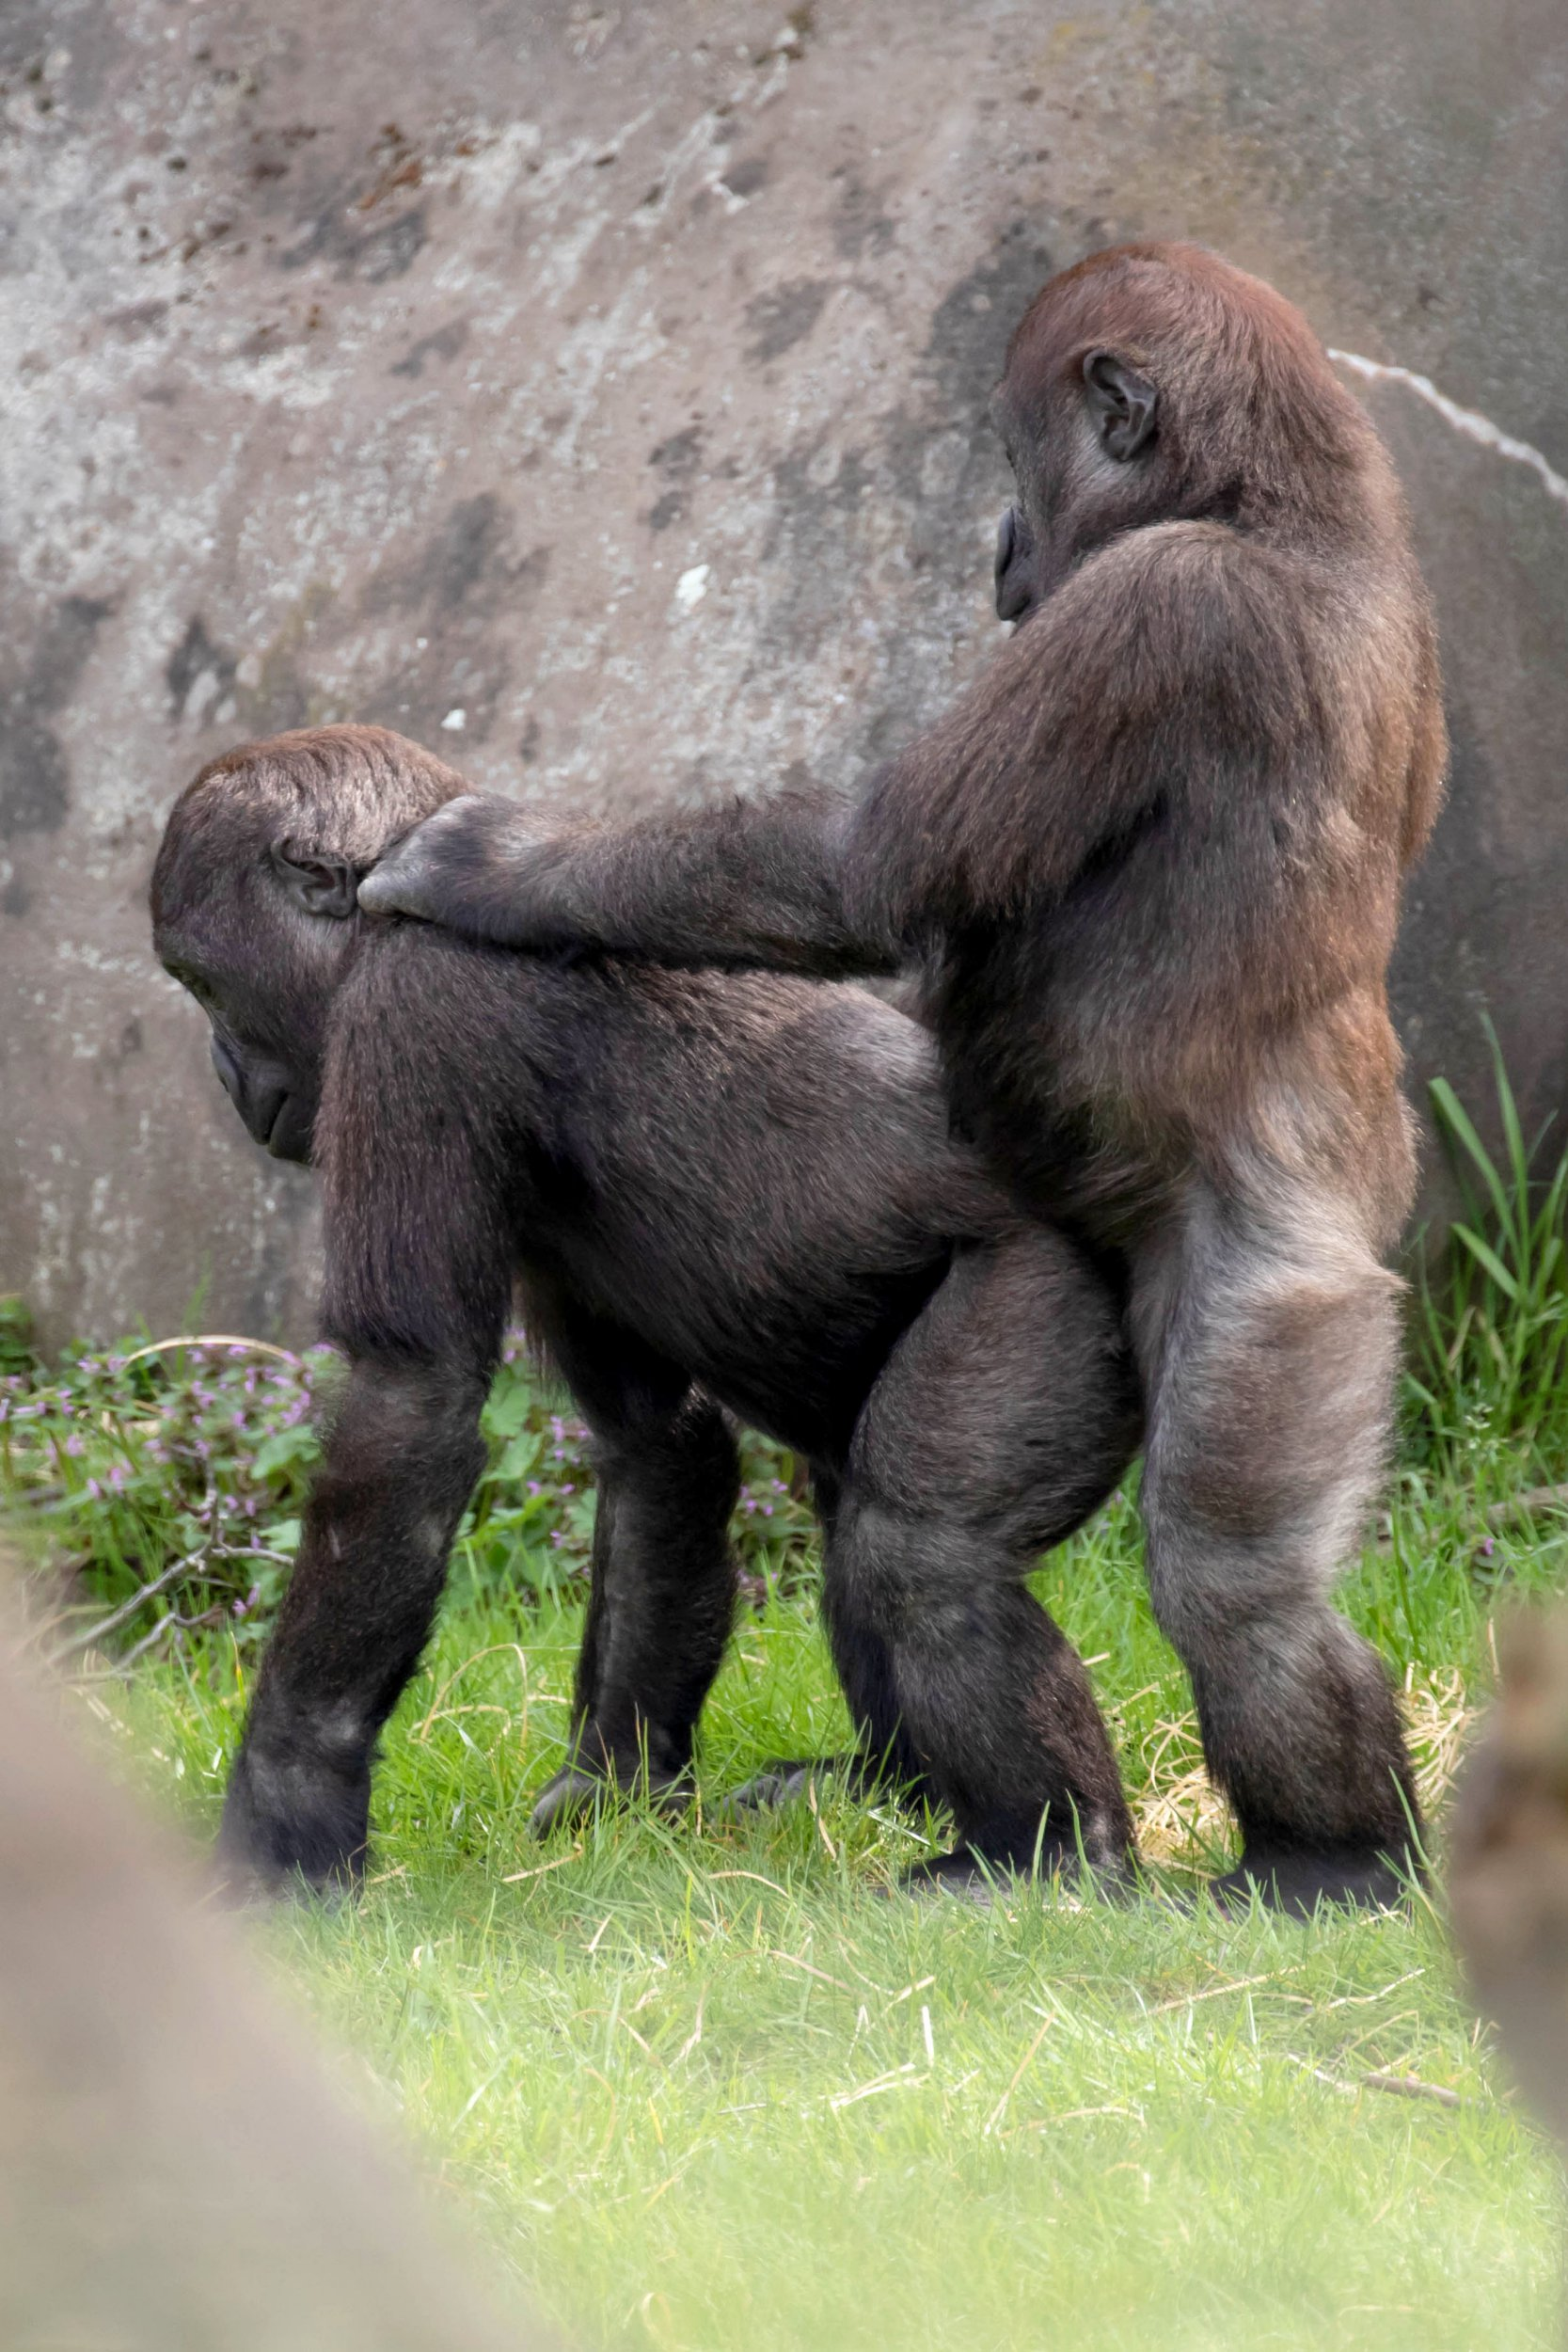 Free Ape Sex Videos ape have sex with woman - why woman allowed to have sex with